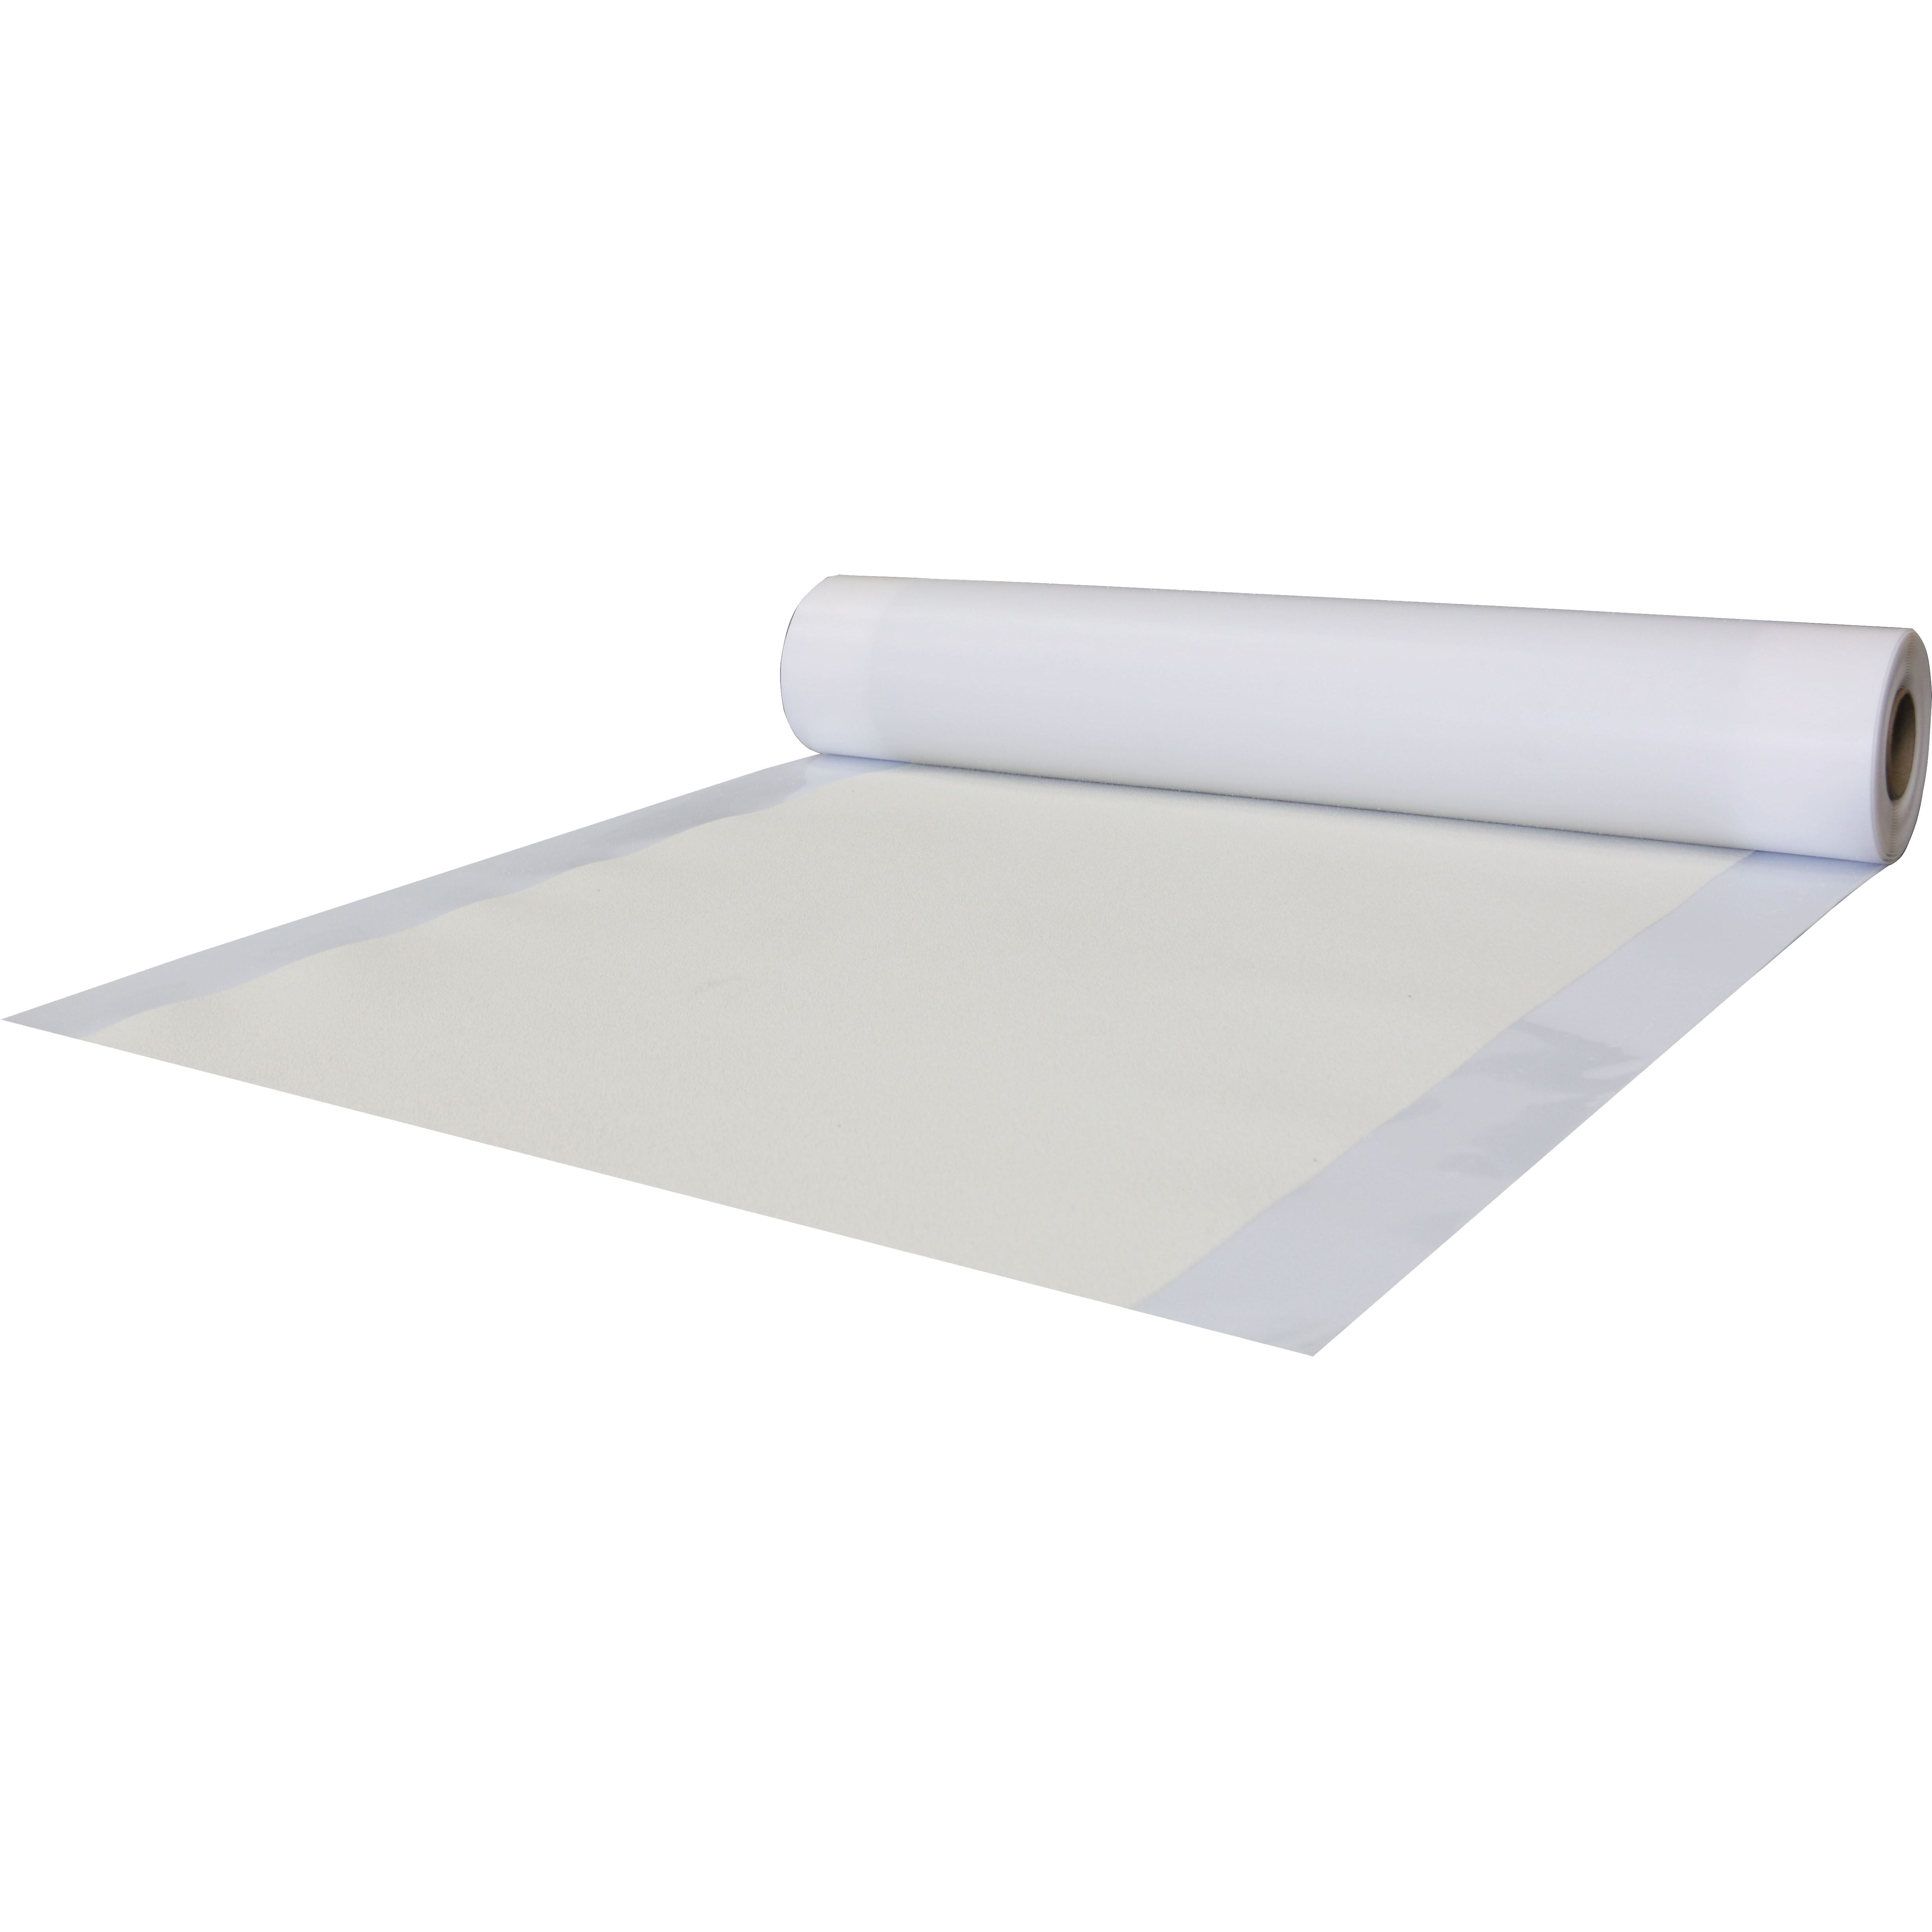 CANLON MBP302(TPO sheet) pre-applied waterproofing membrane with double side welding selvedge